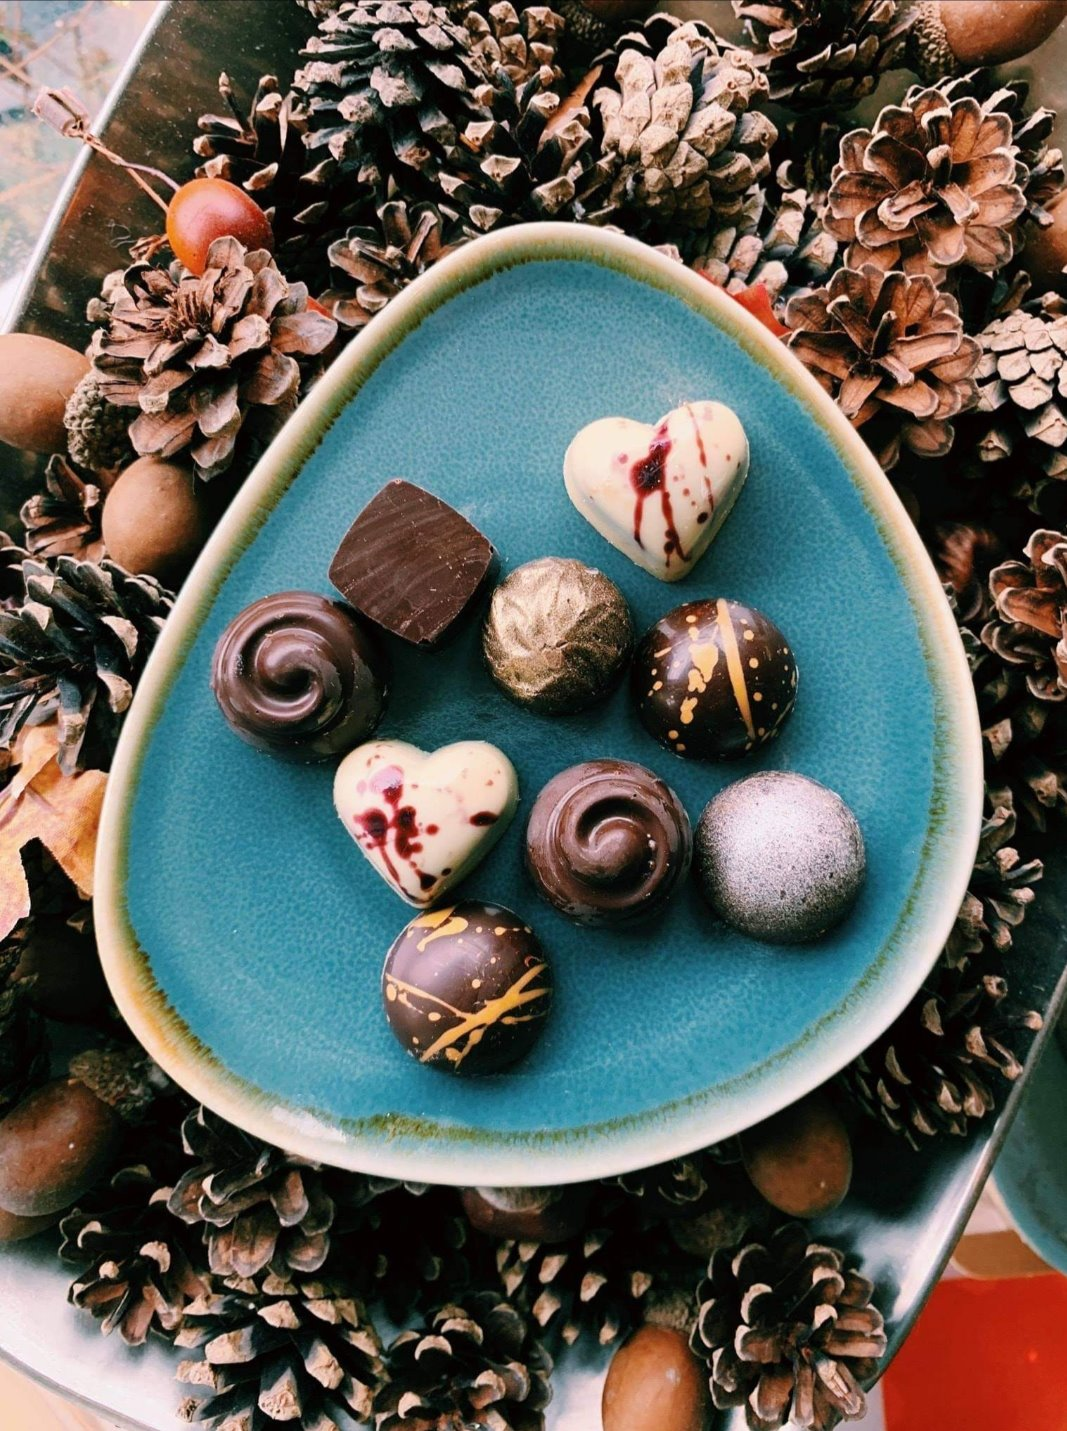 Handcrafted Chocolates